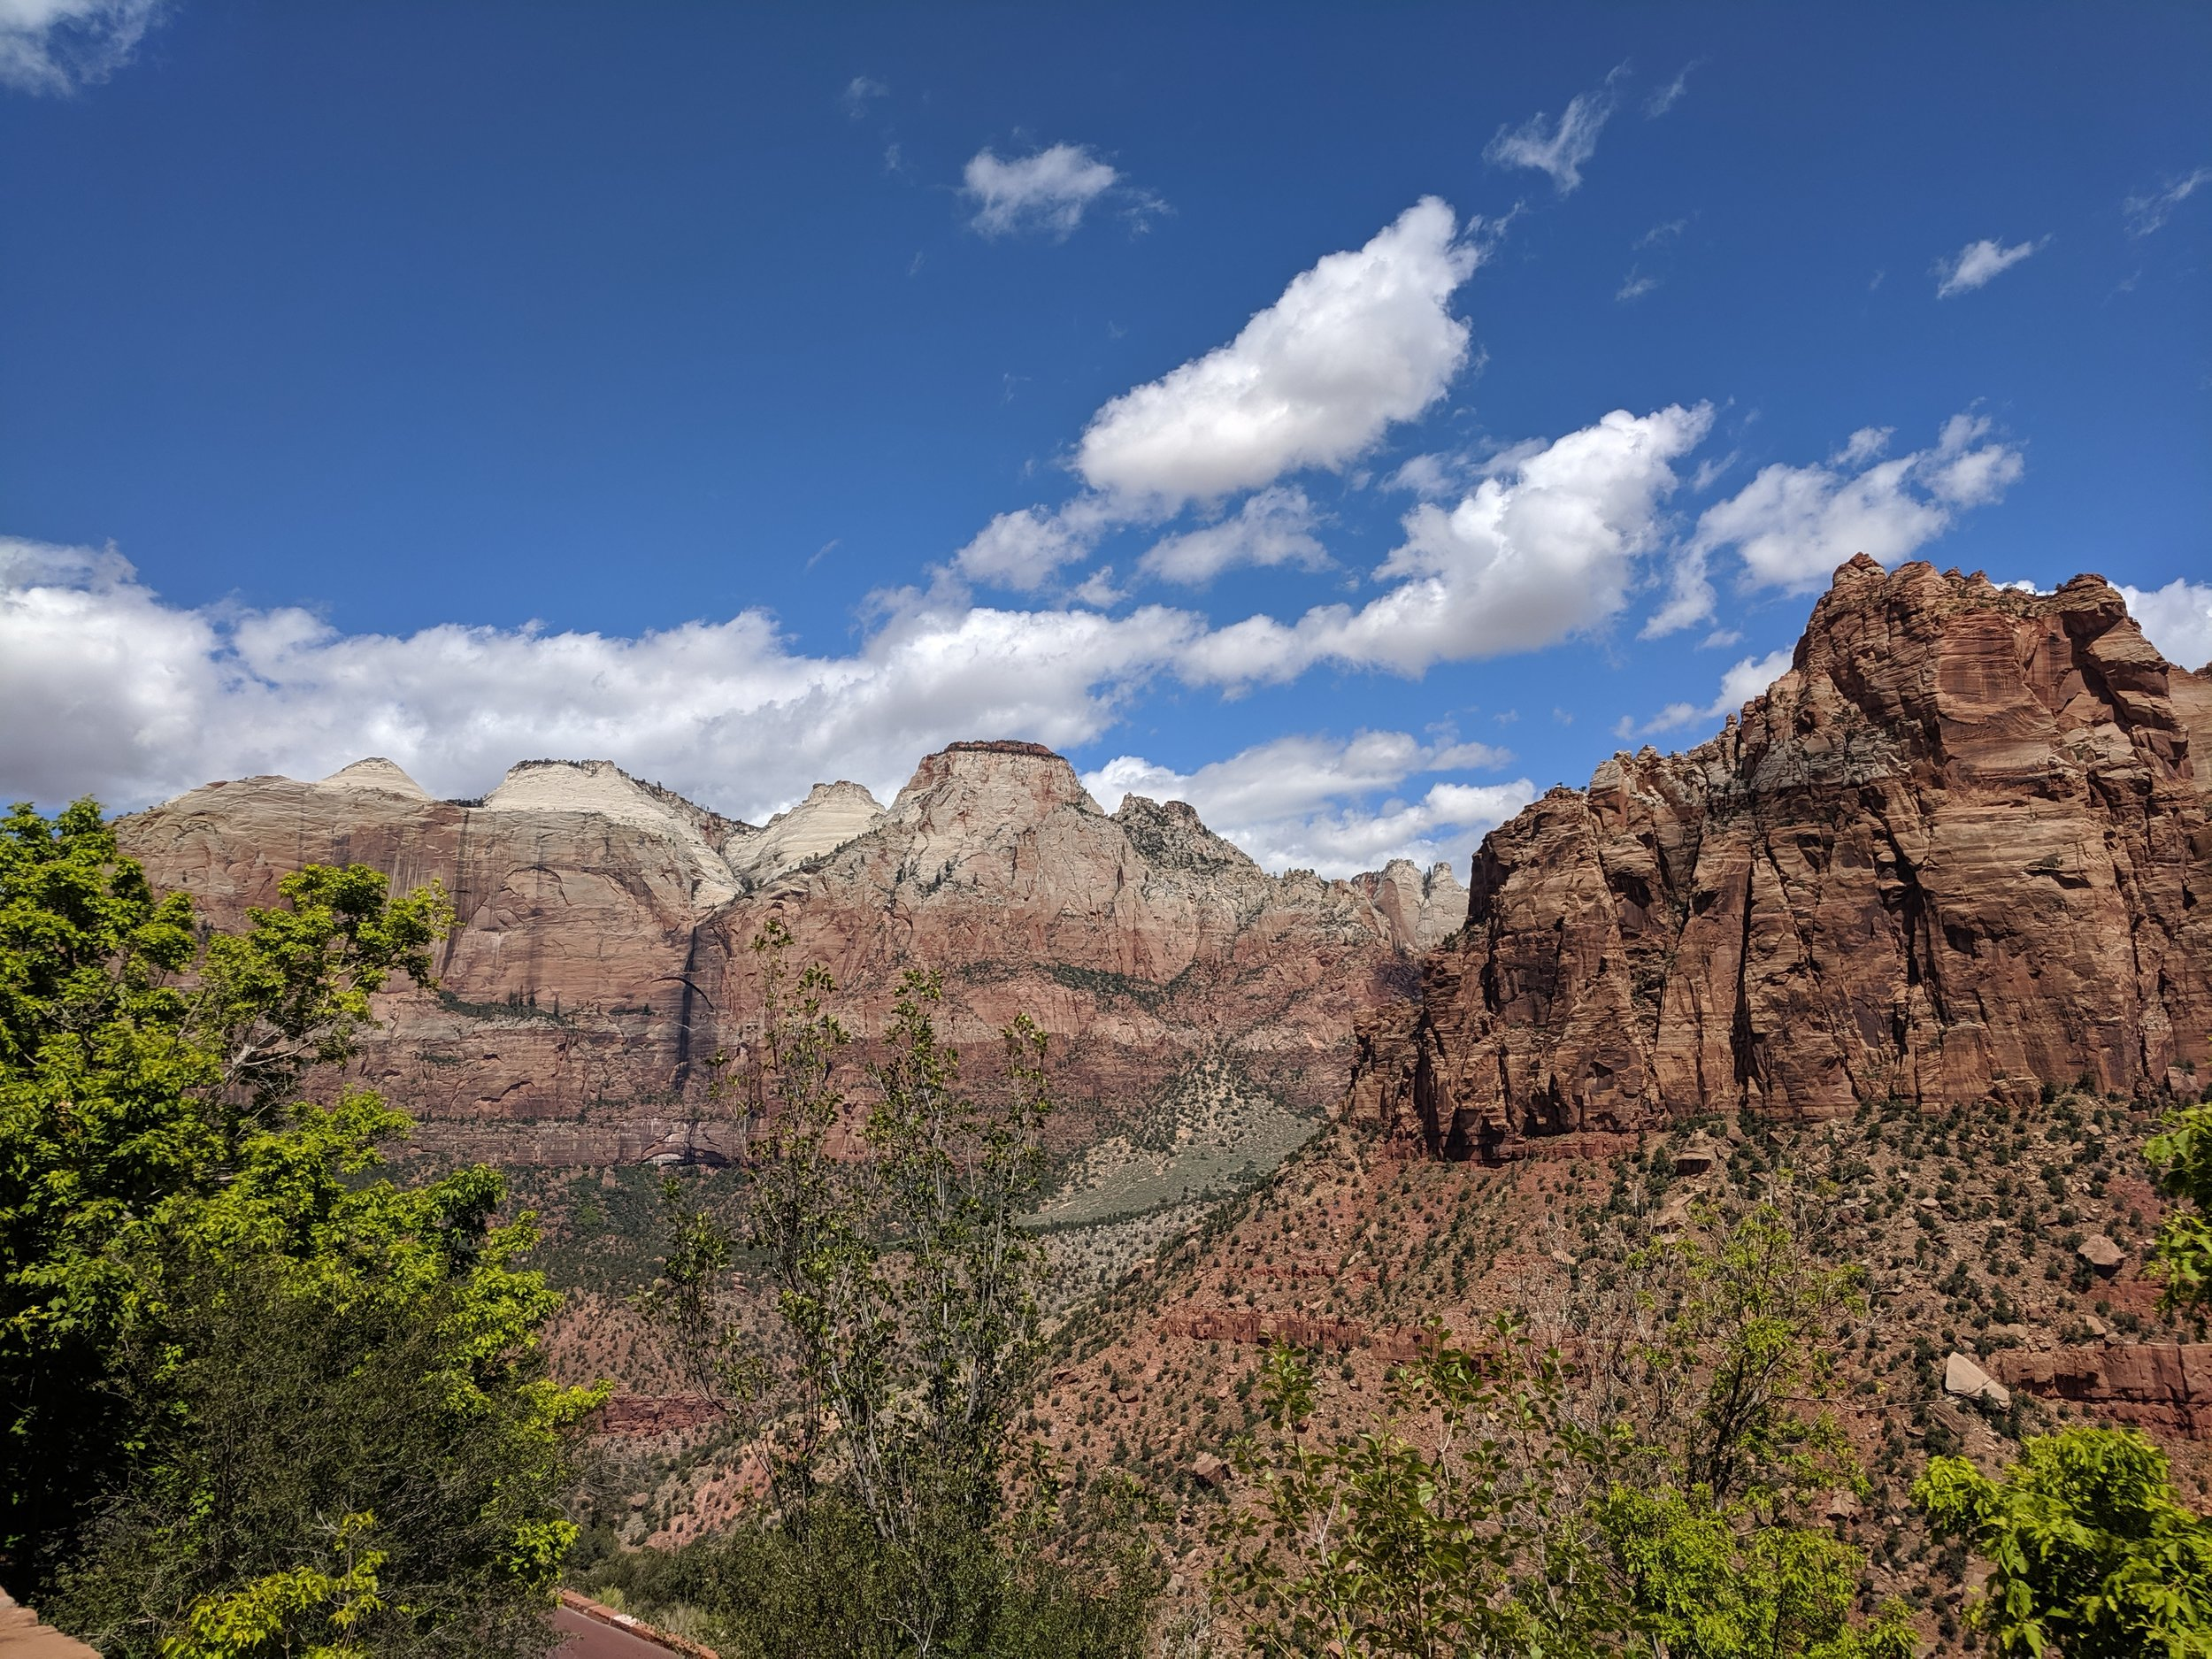 View coming into Zion National Park